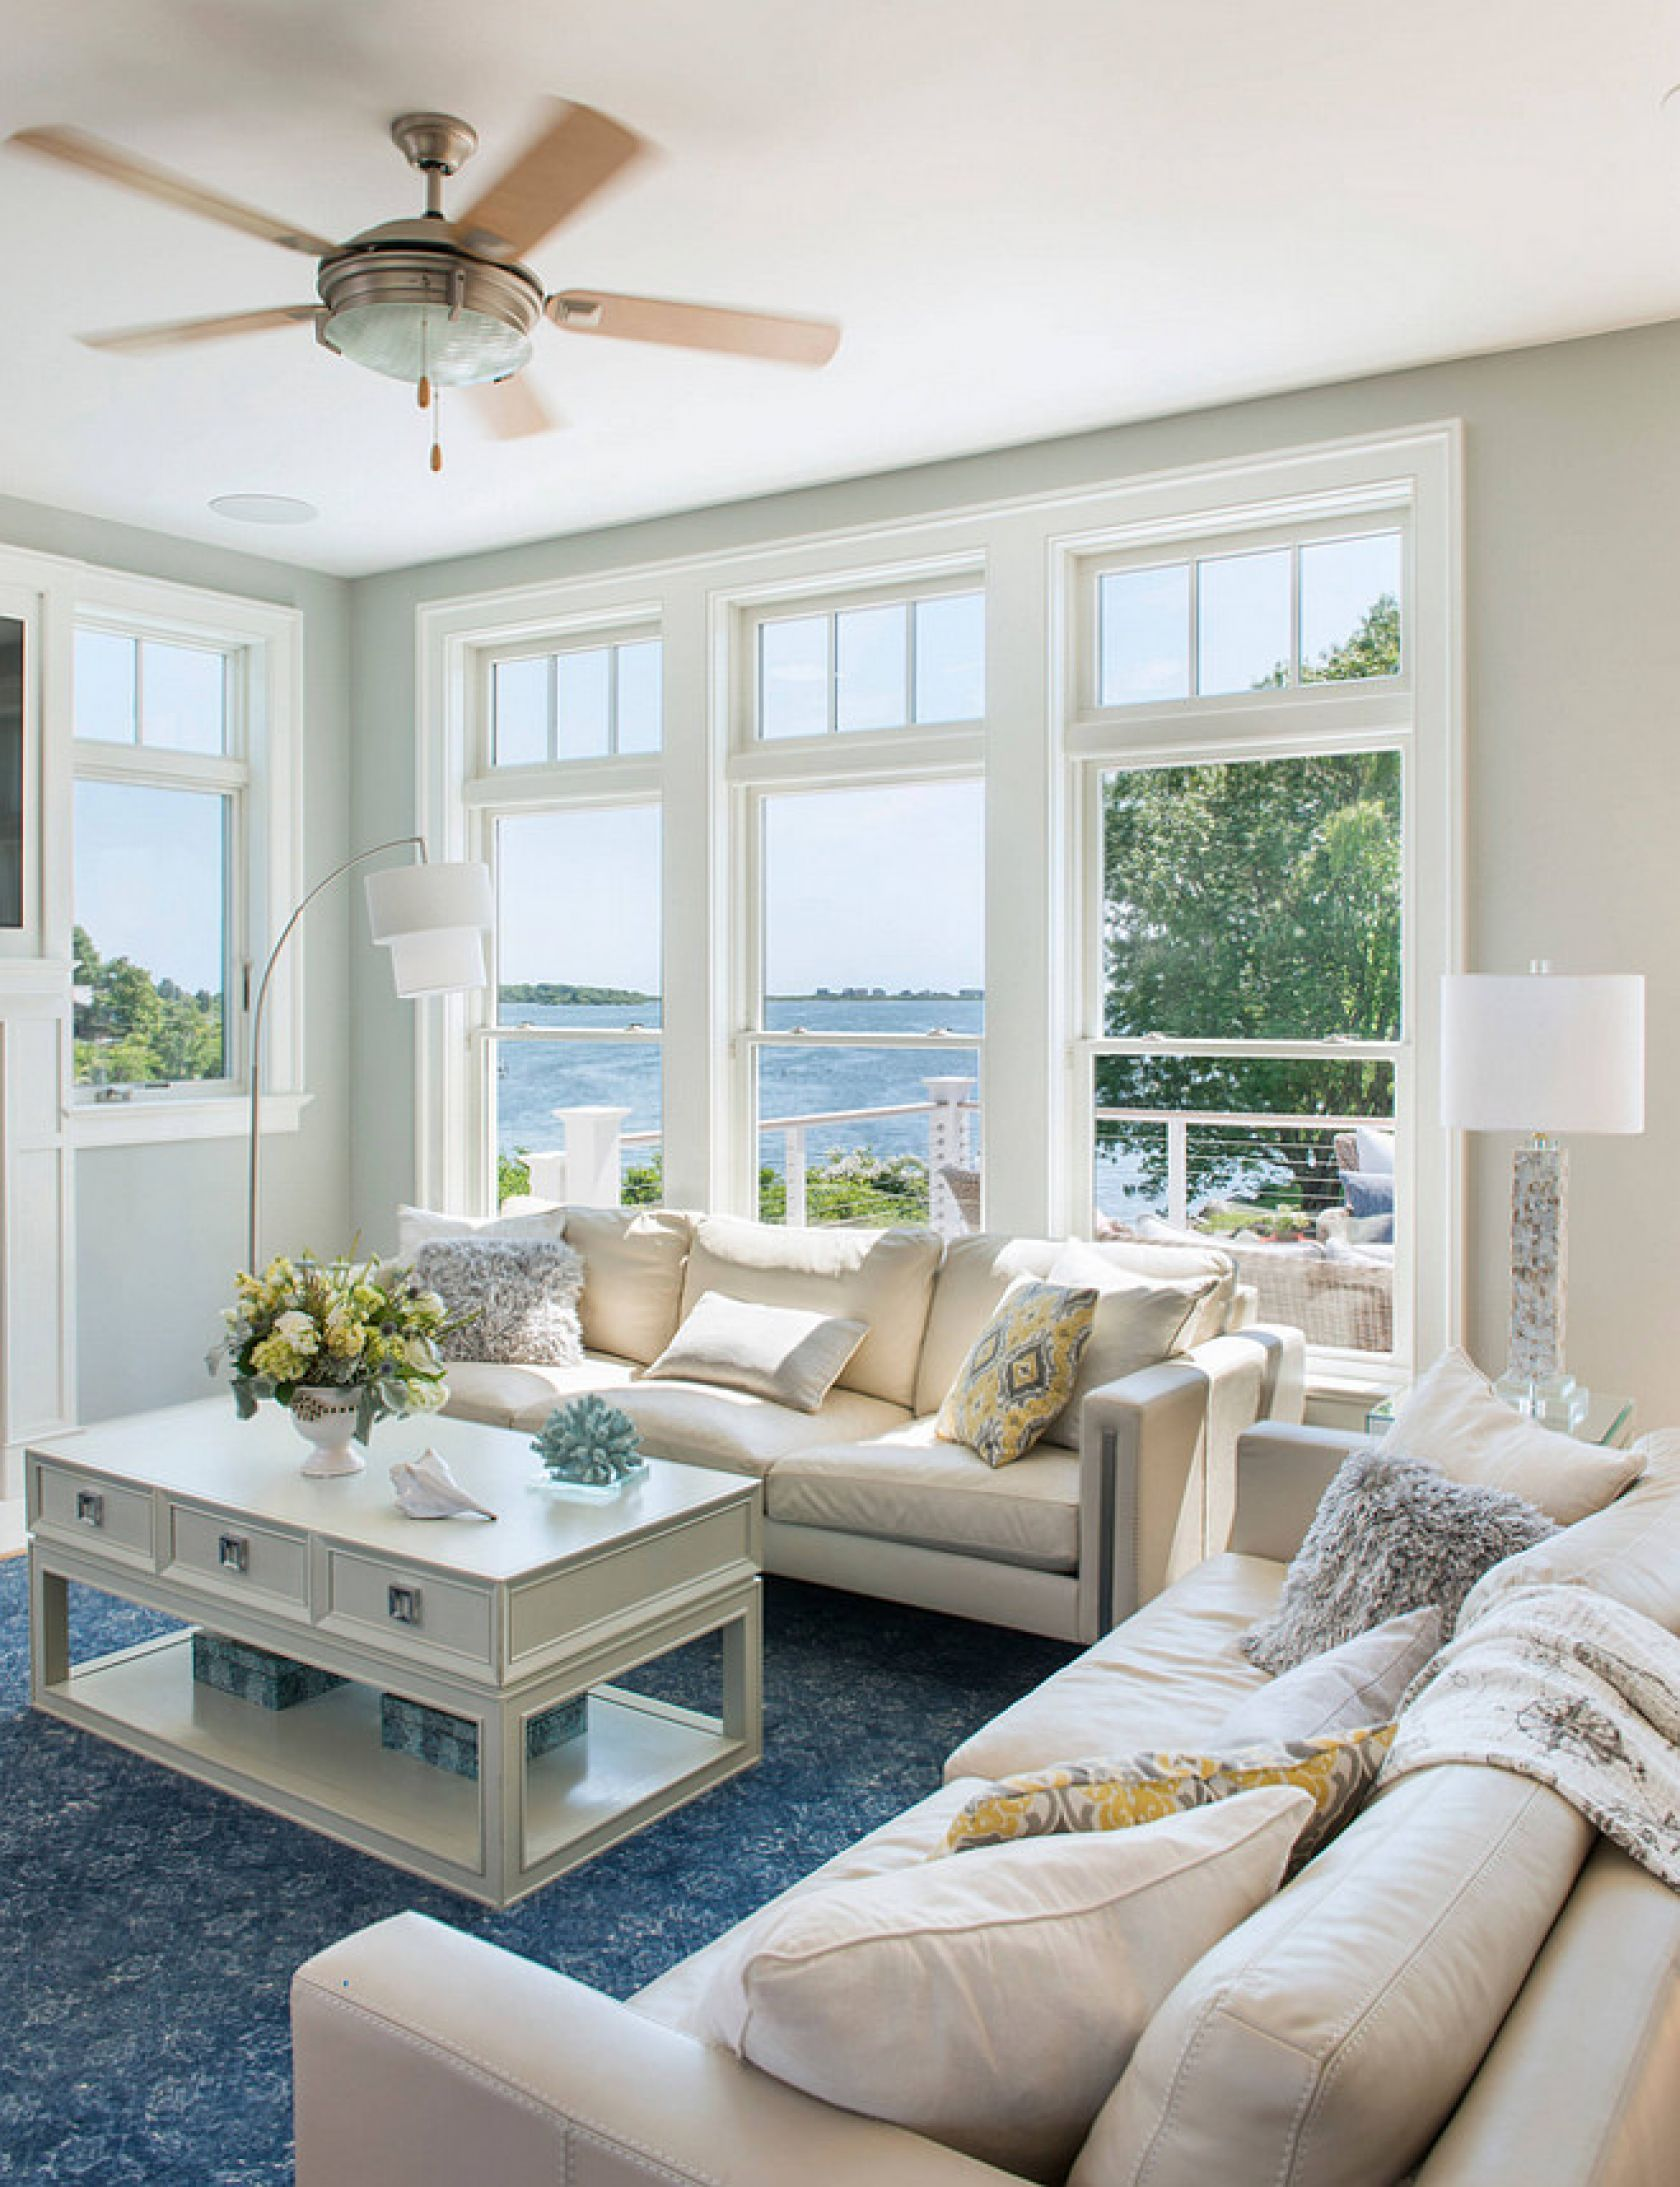 Rhode Island Beach Cottage Living Room in 2019 | Cottage ...